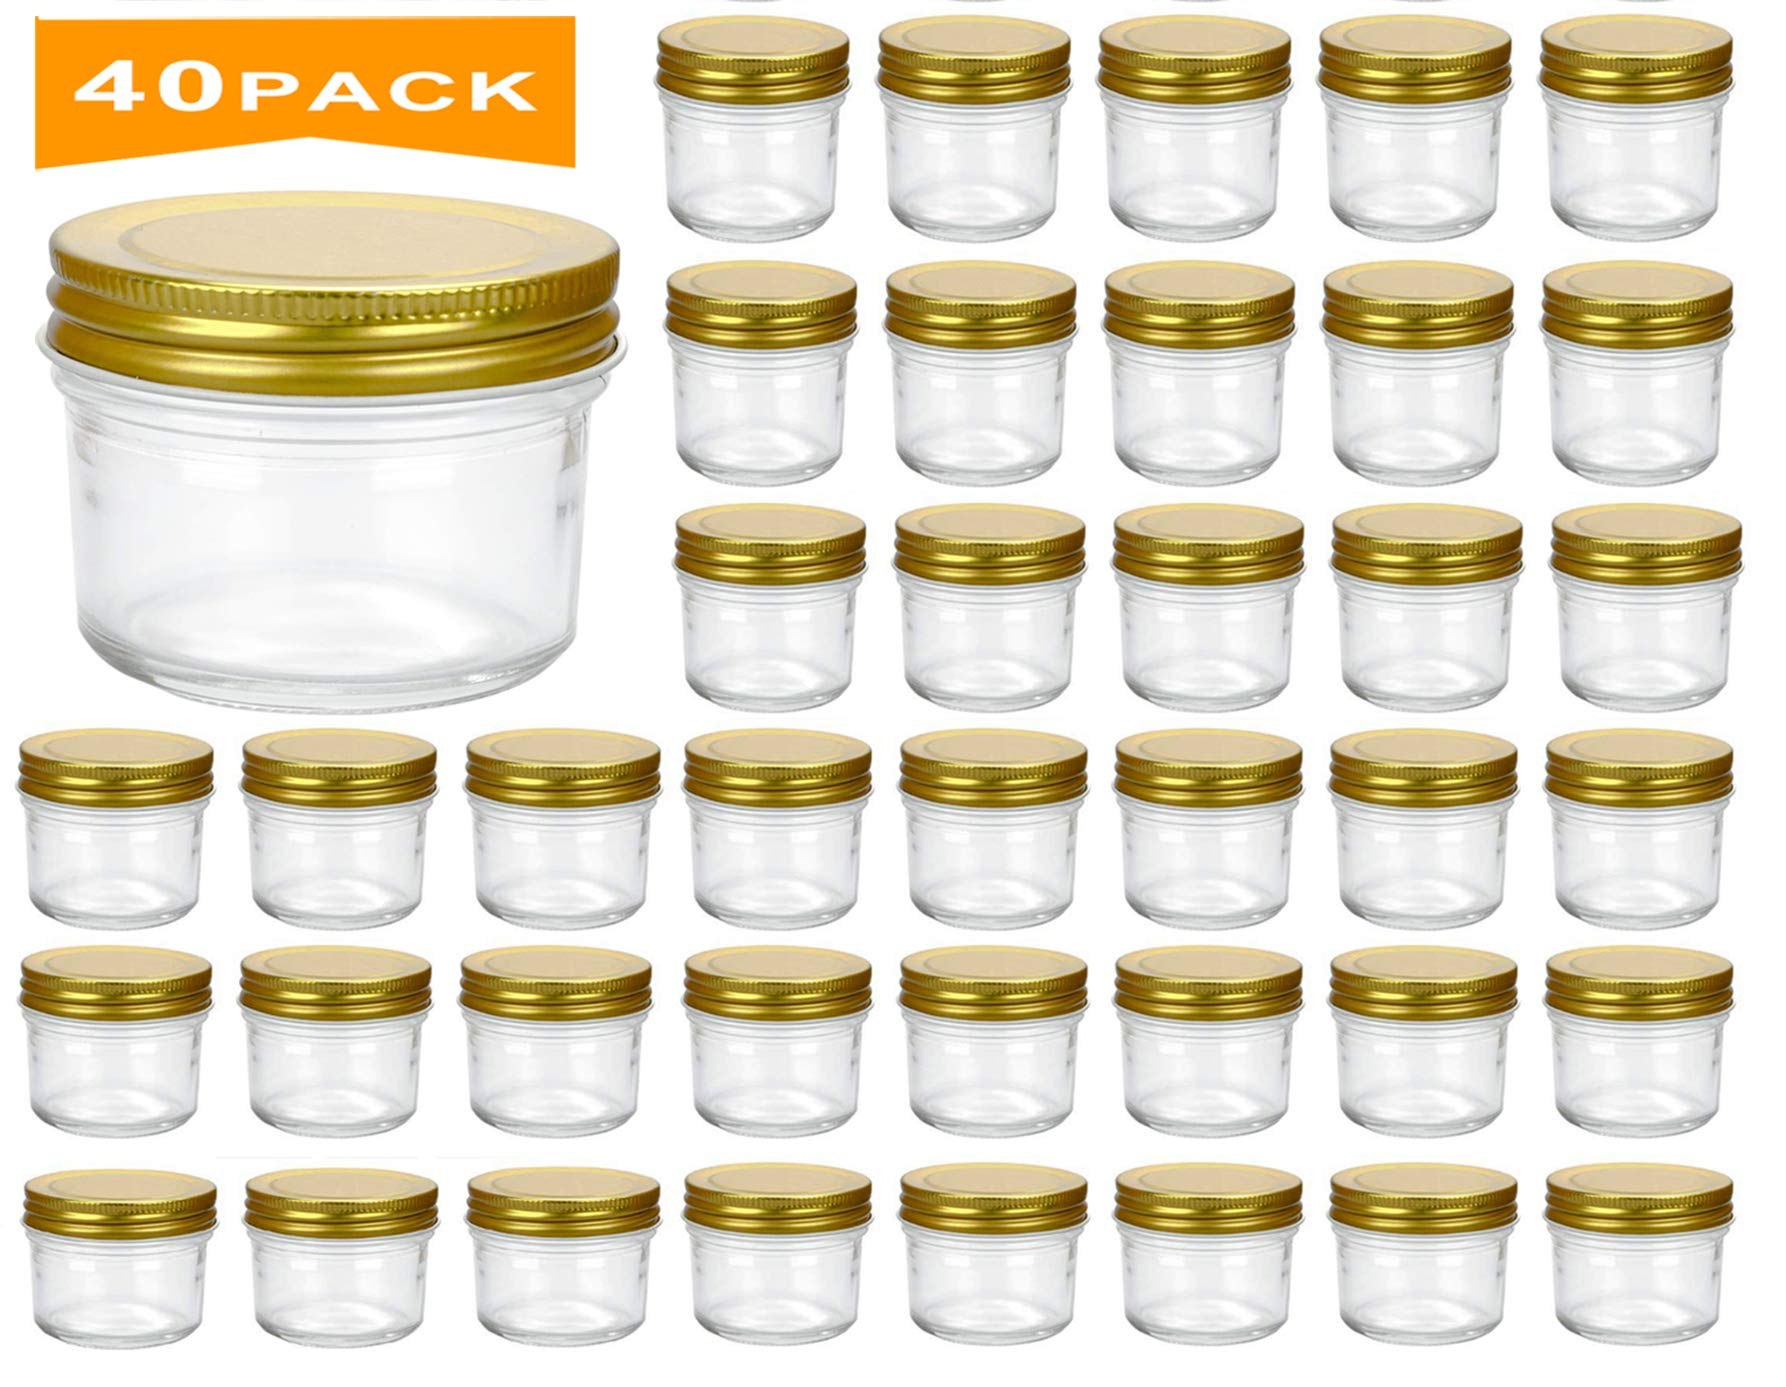 Encheng 4 oz Clear Glass Jars With Lids(Golden),Small Spice Jars For Herb,Jelly,Jams,Wide Mouth Manson Jars Canning Jars For Kitchen Storage 40 Pack ...